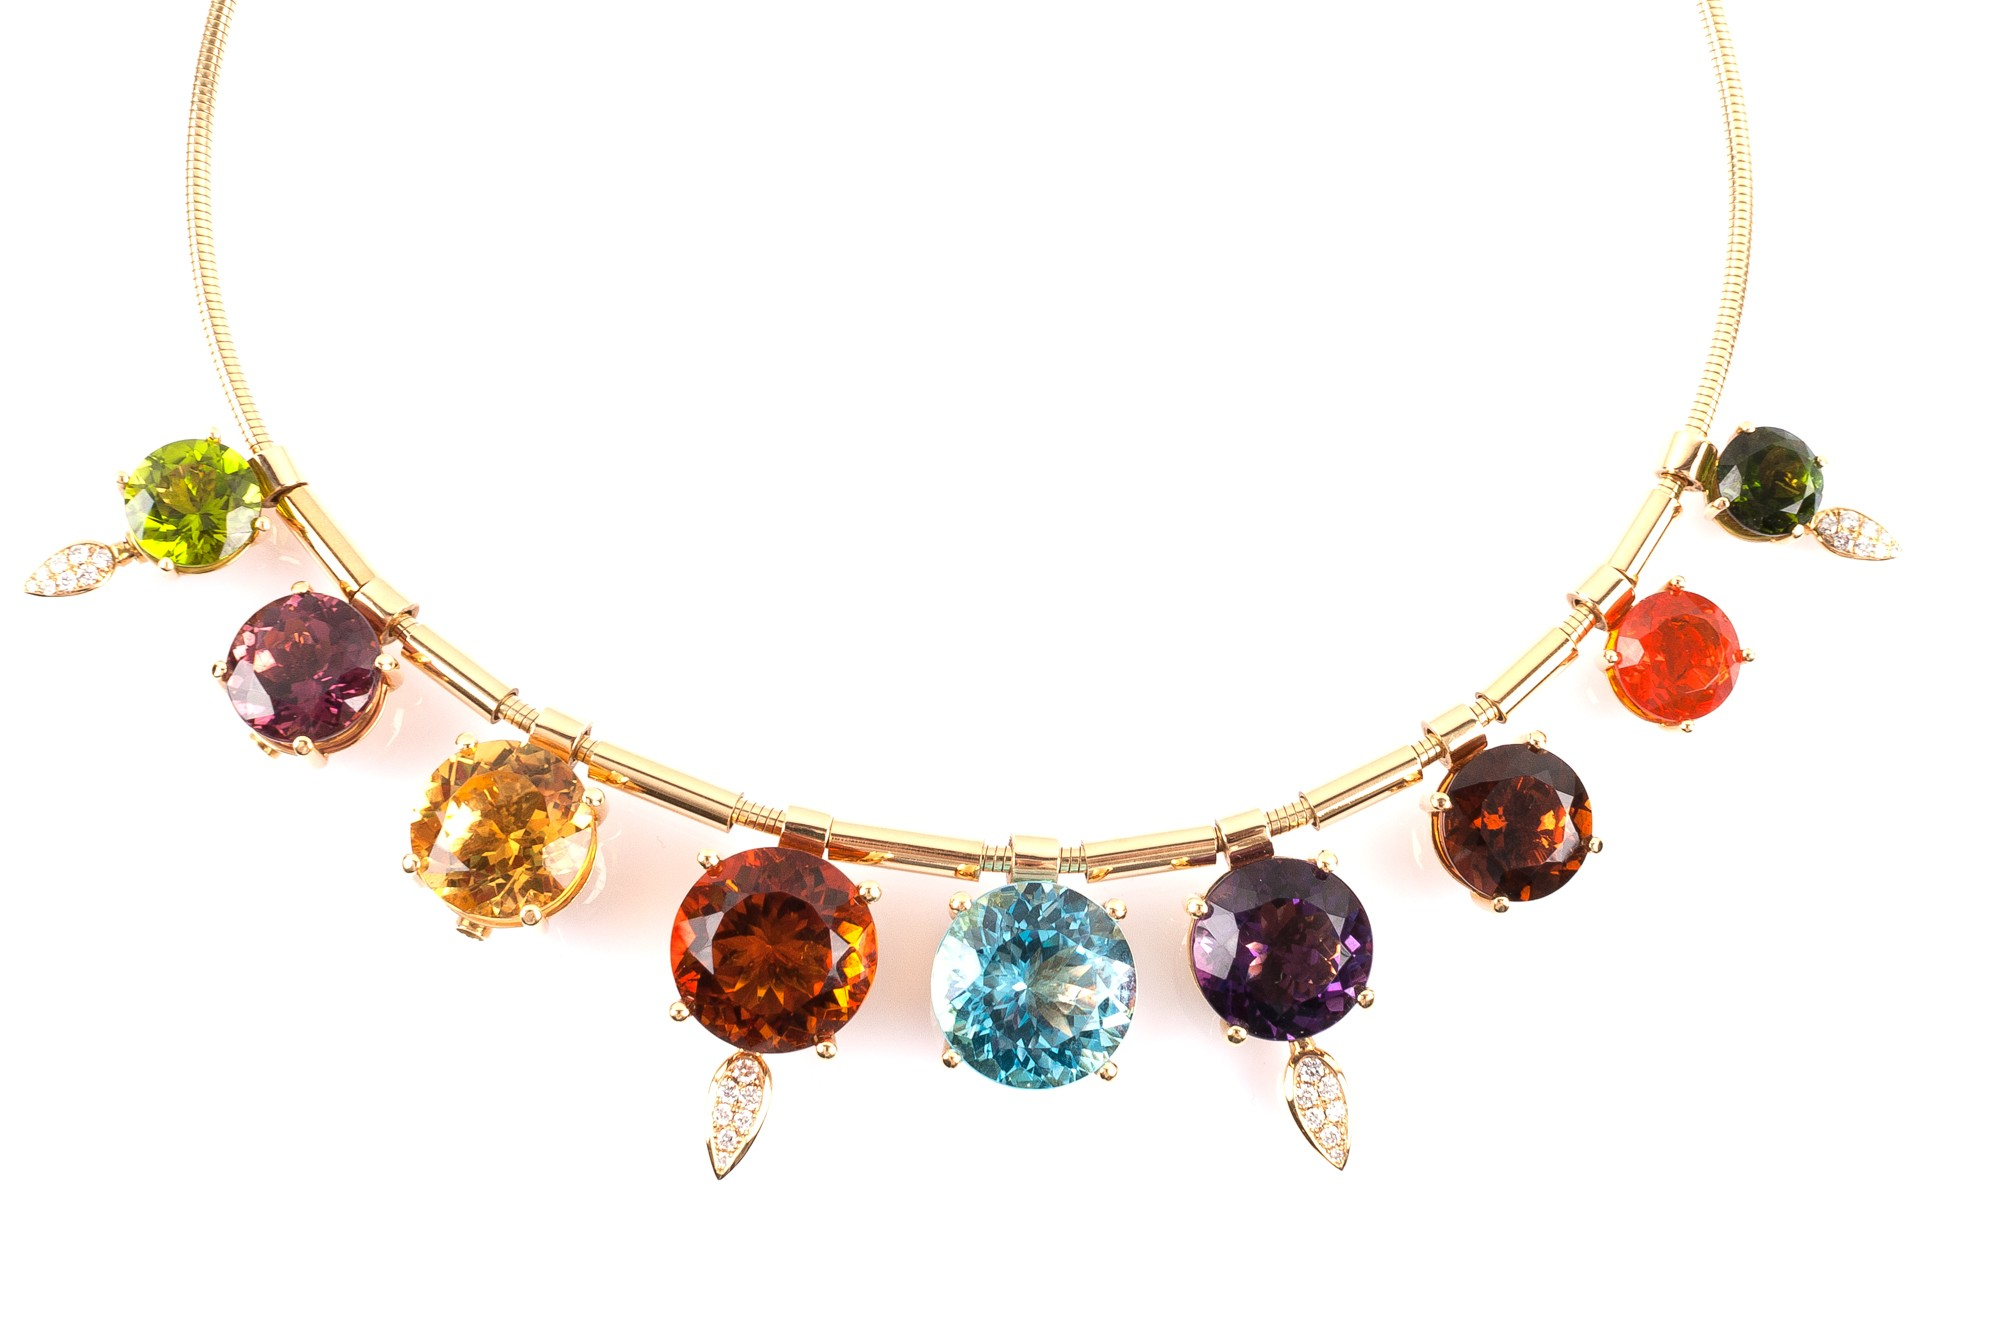 Collier individuell